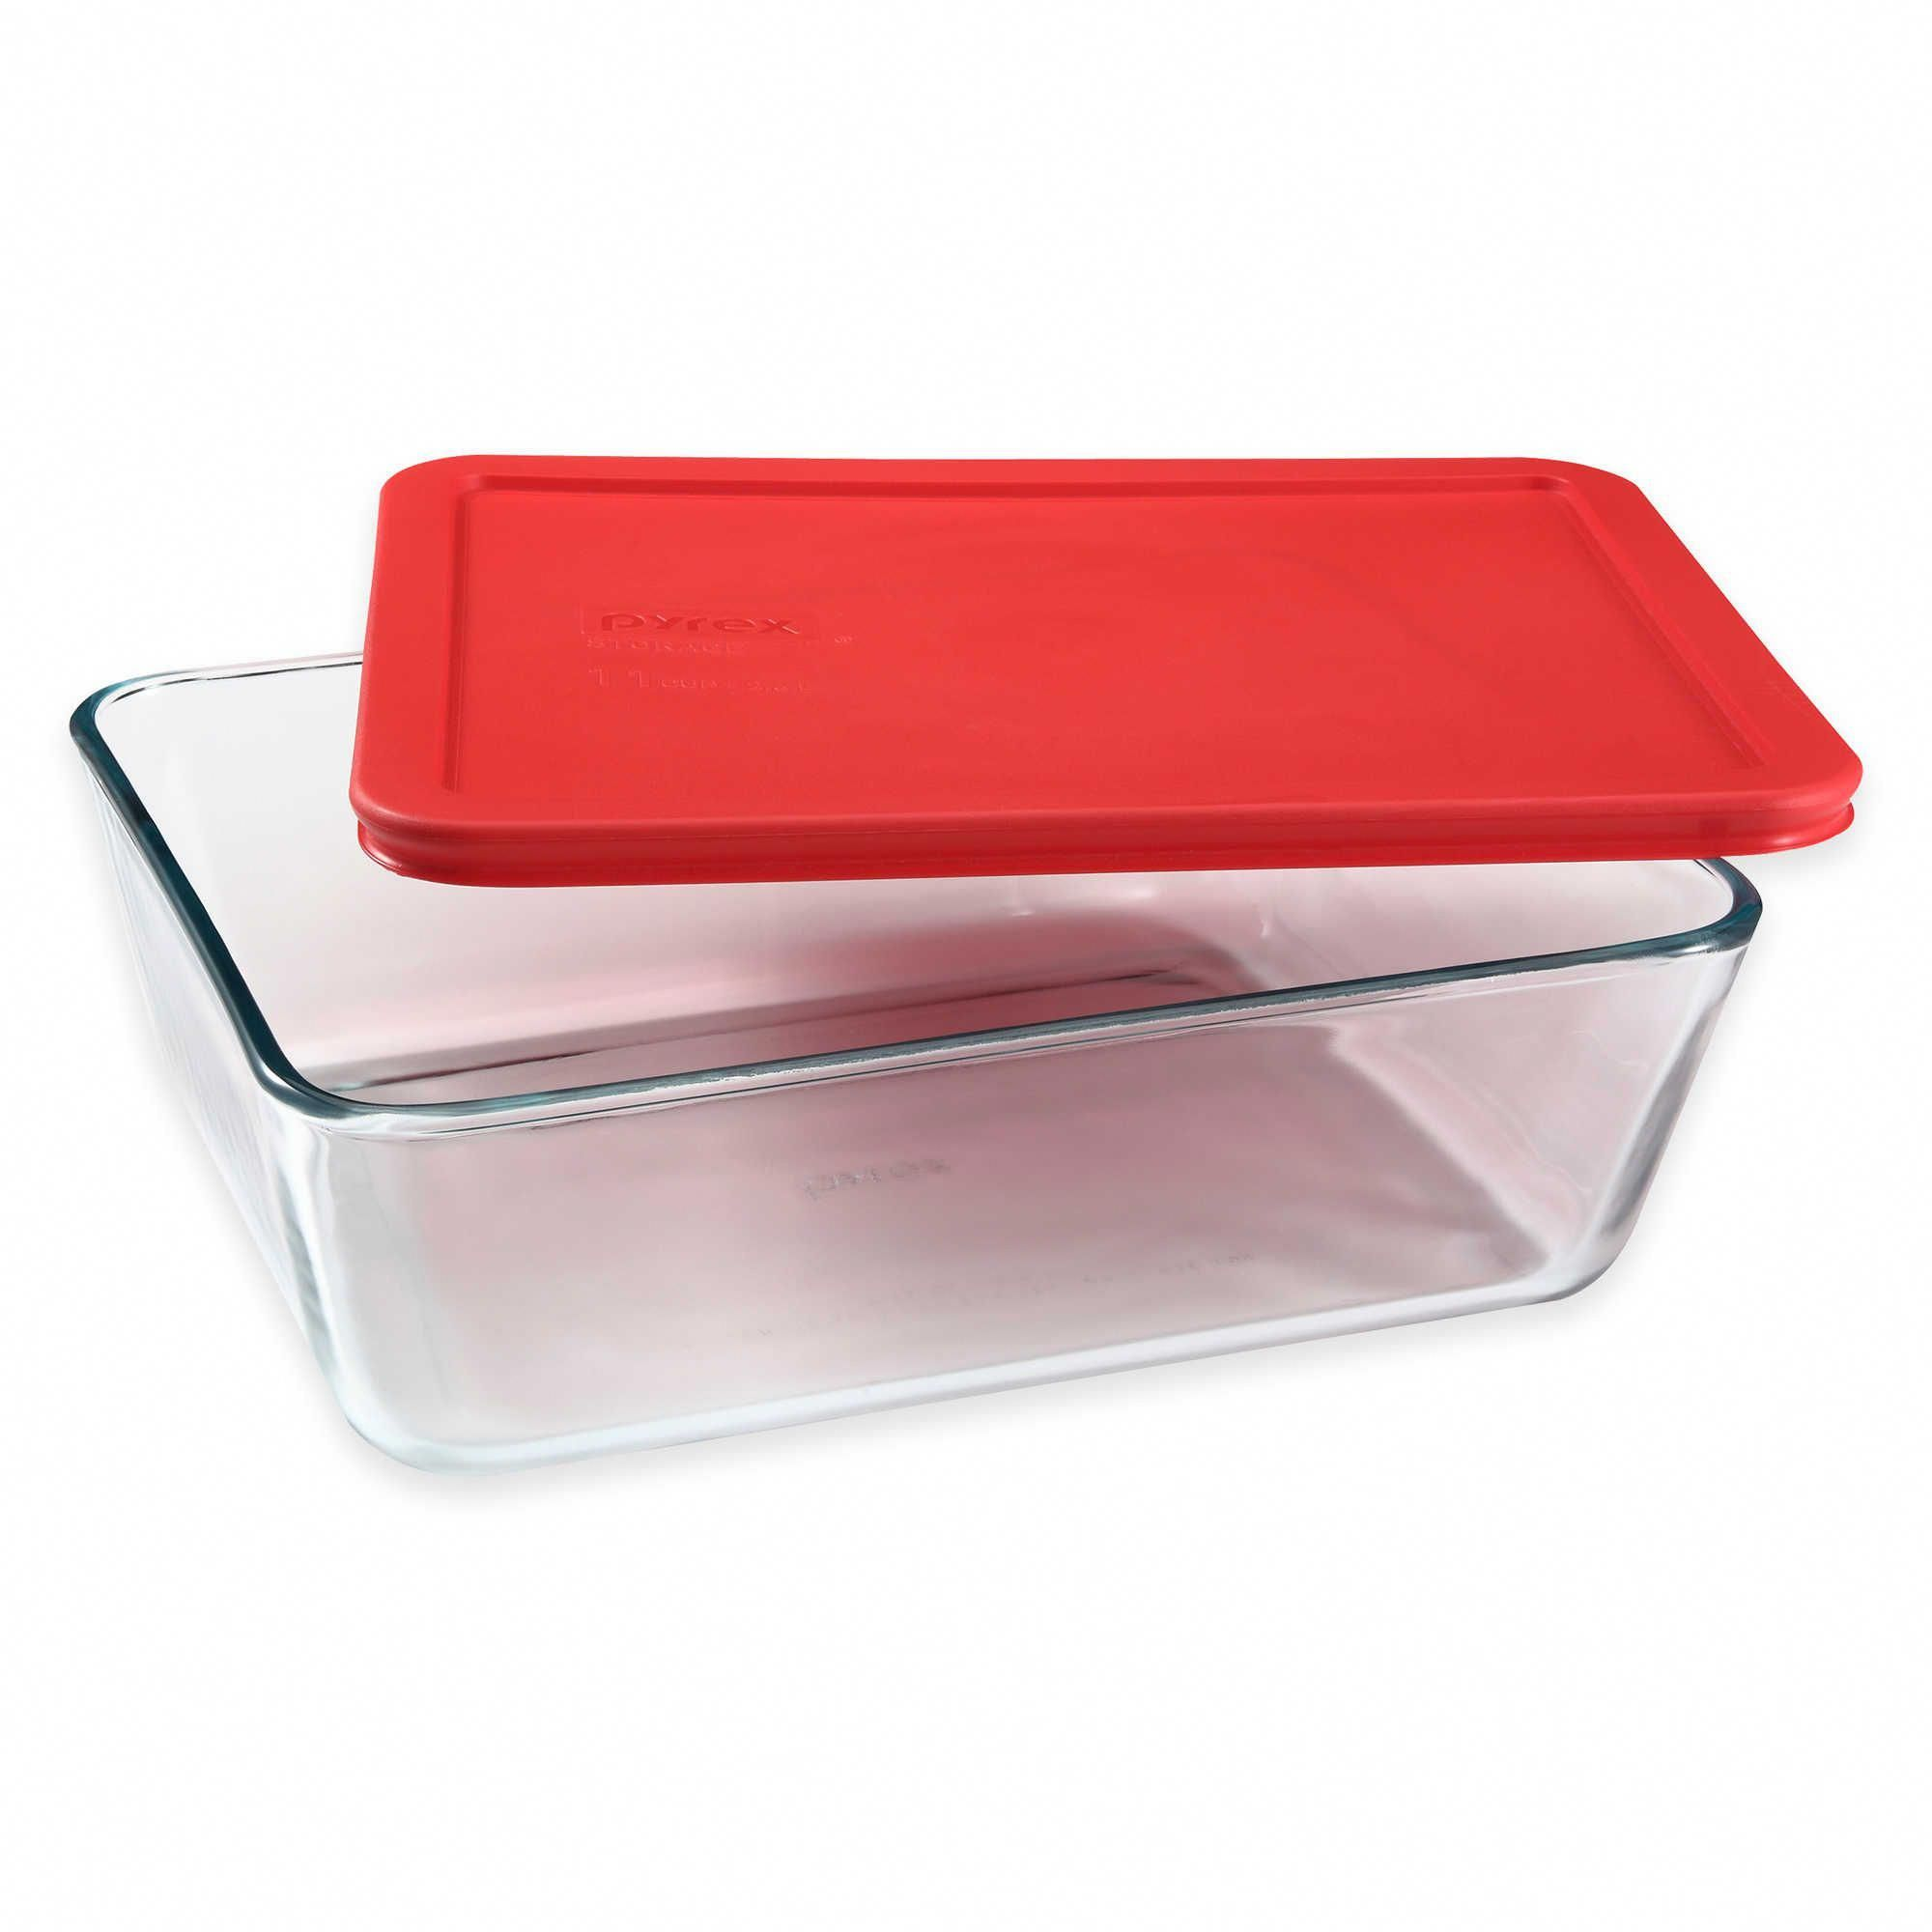 Pyrex storage plus glass container collection casserolebakeware